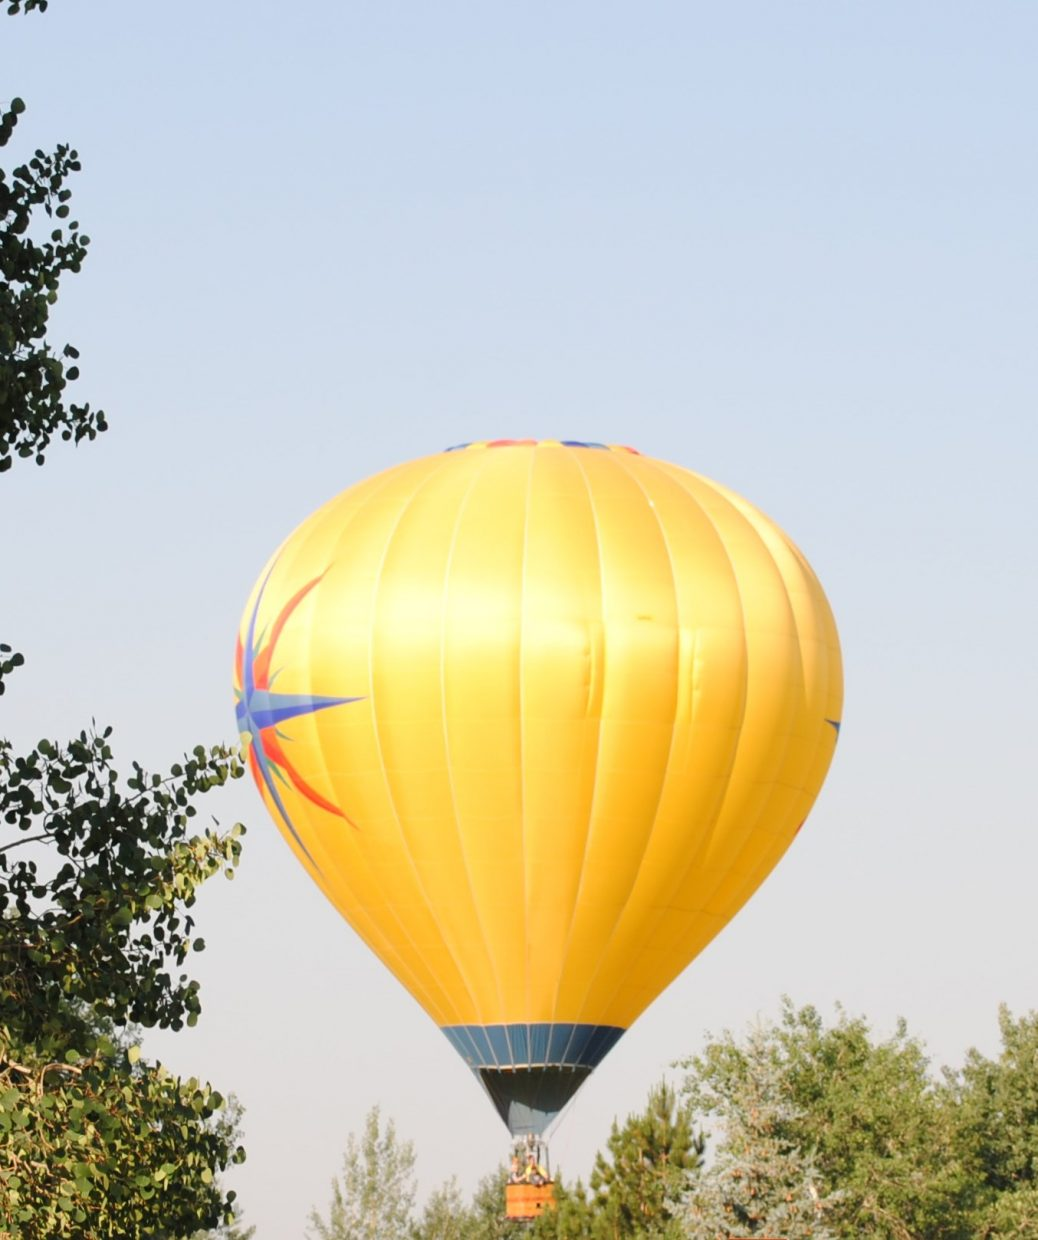 One day before Balloon Rodeo